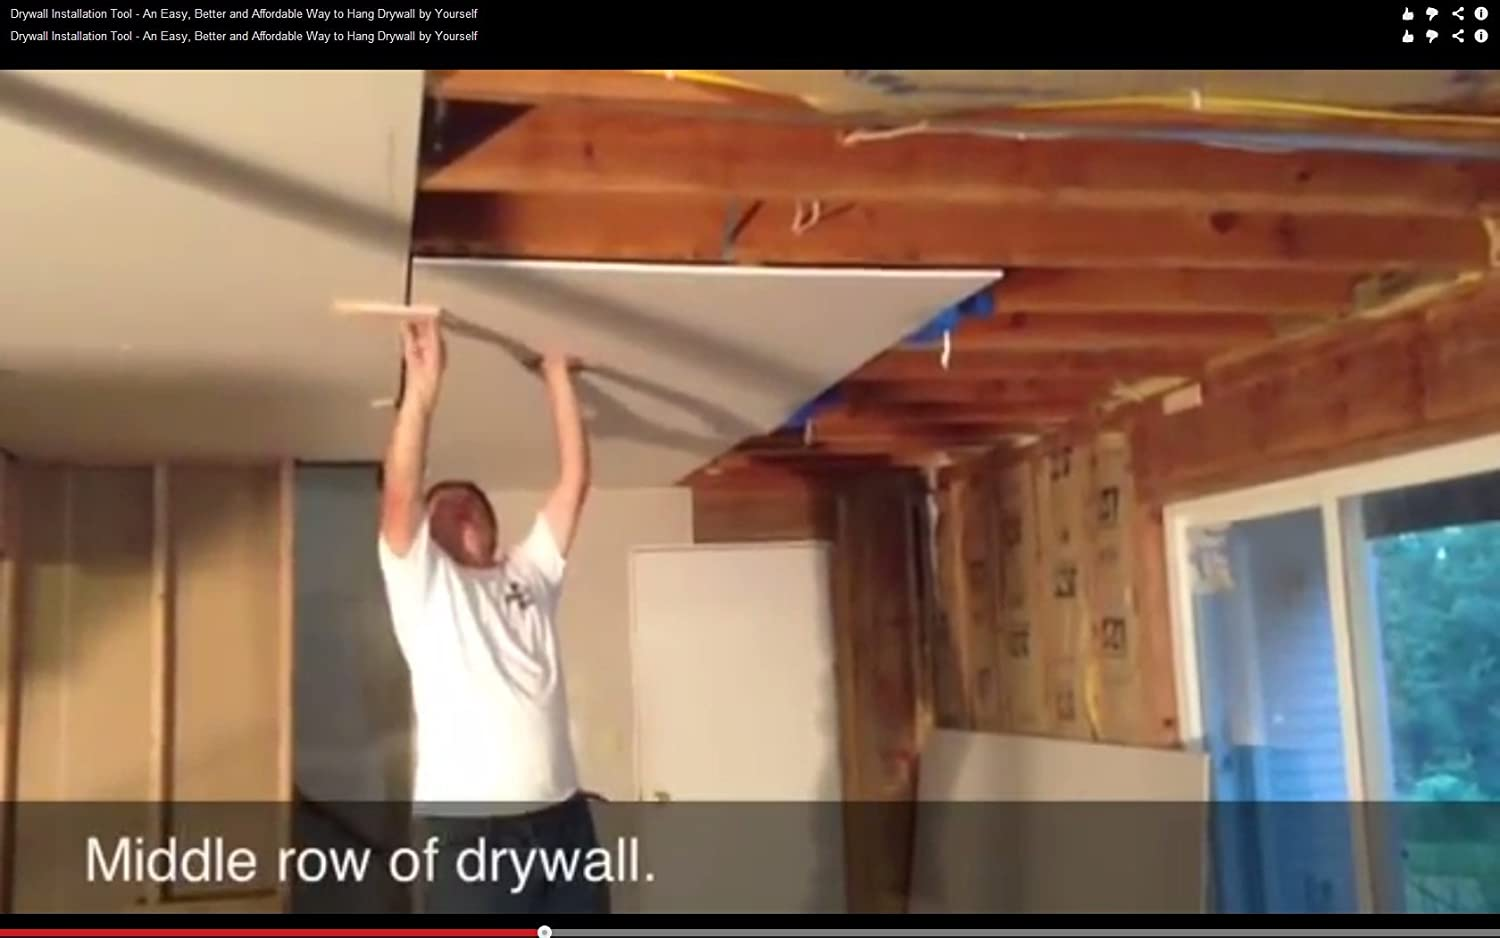 How to hang drywall on walls - How To Hang Drywall On Walls 37